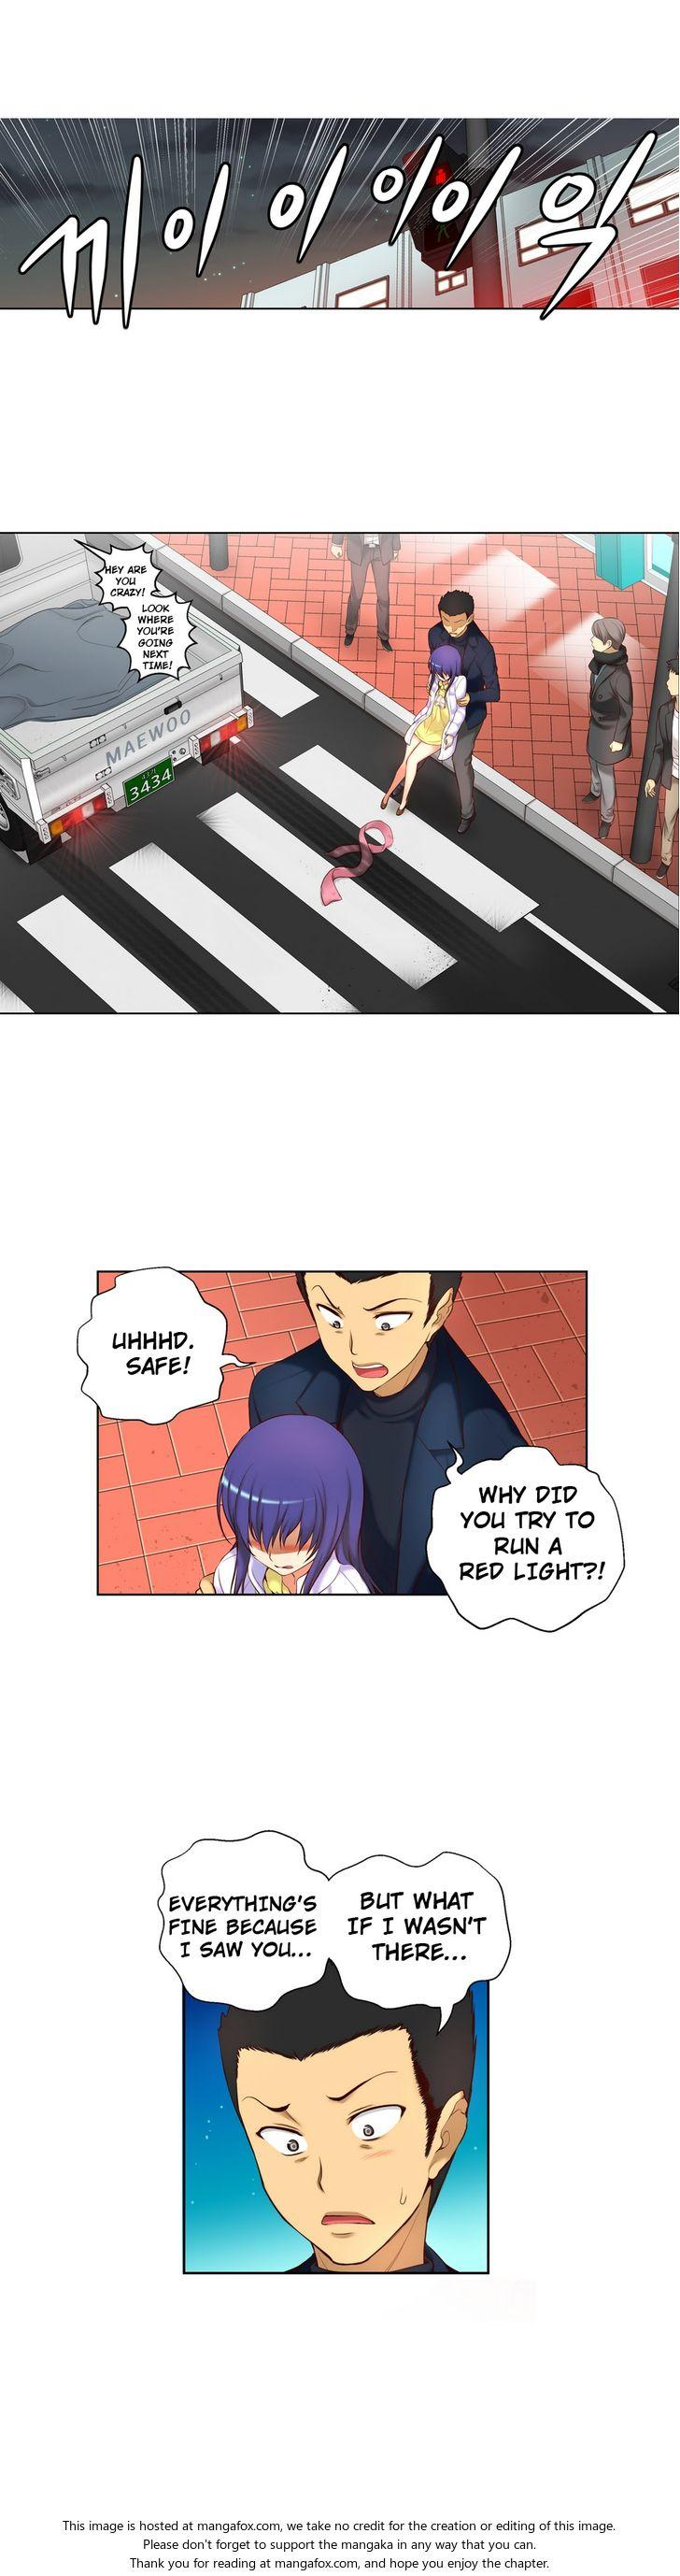 [Donggul Gom] She is Young (English) Part 1/2 779